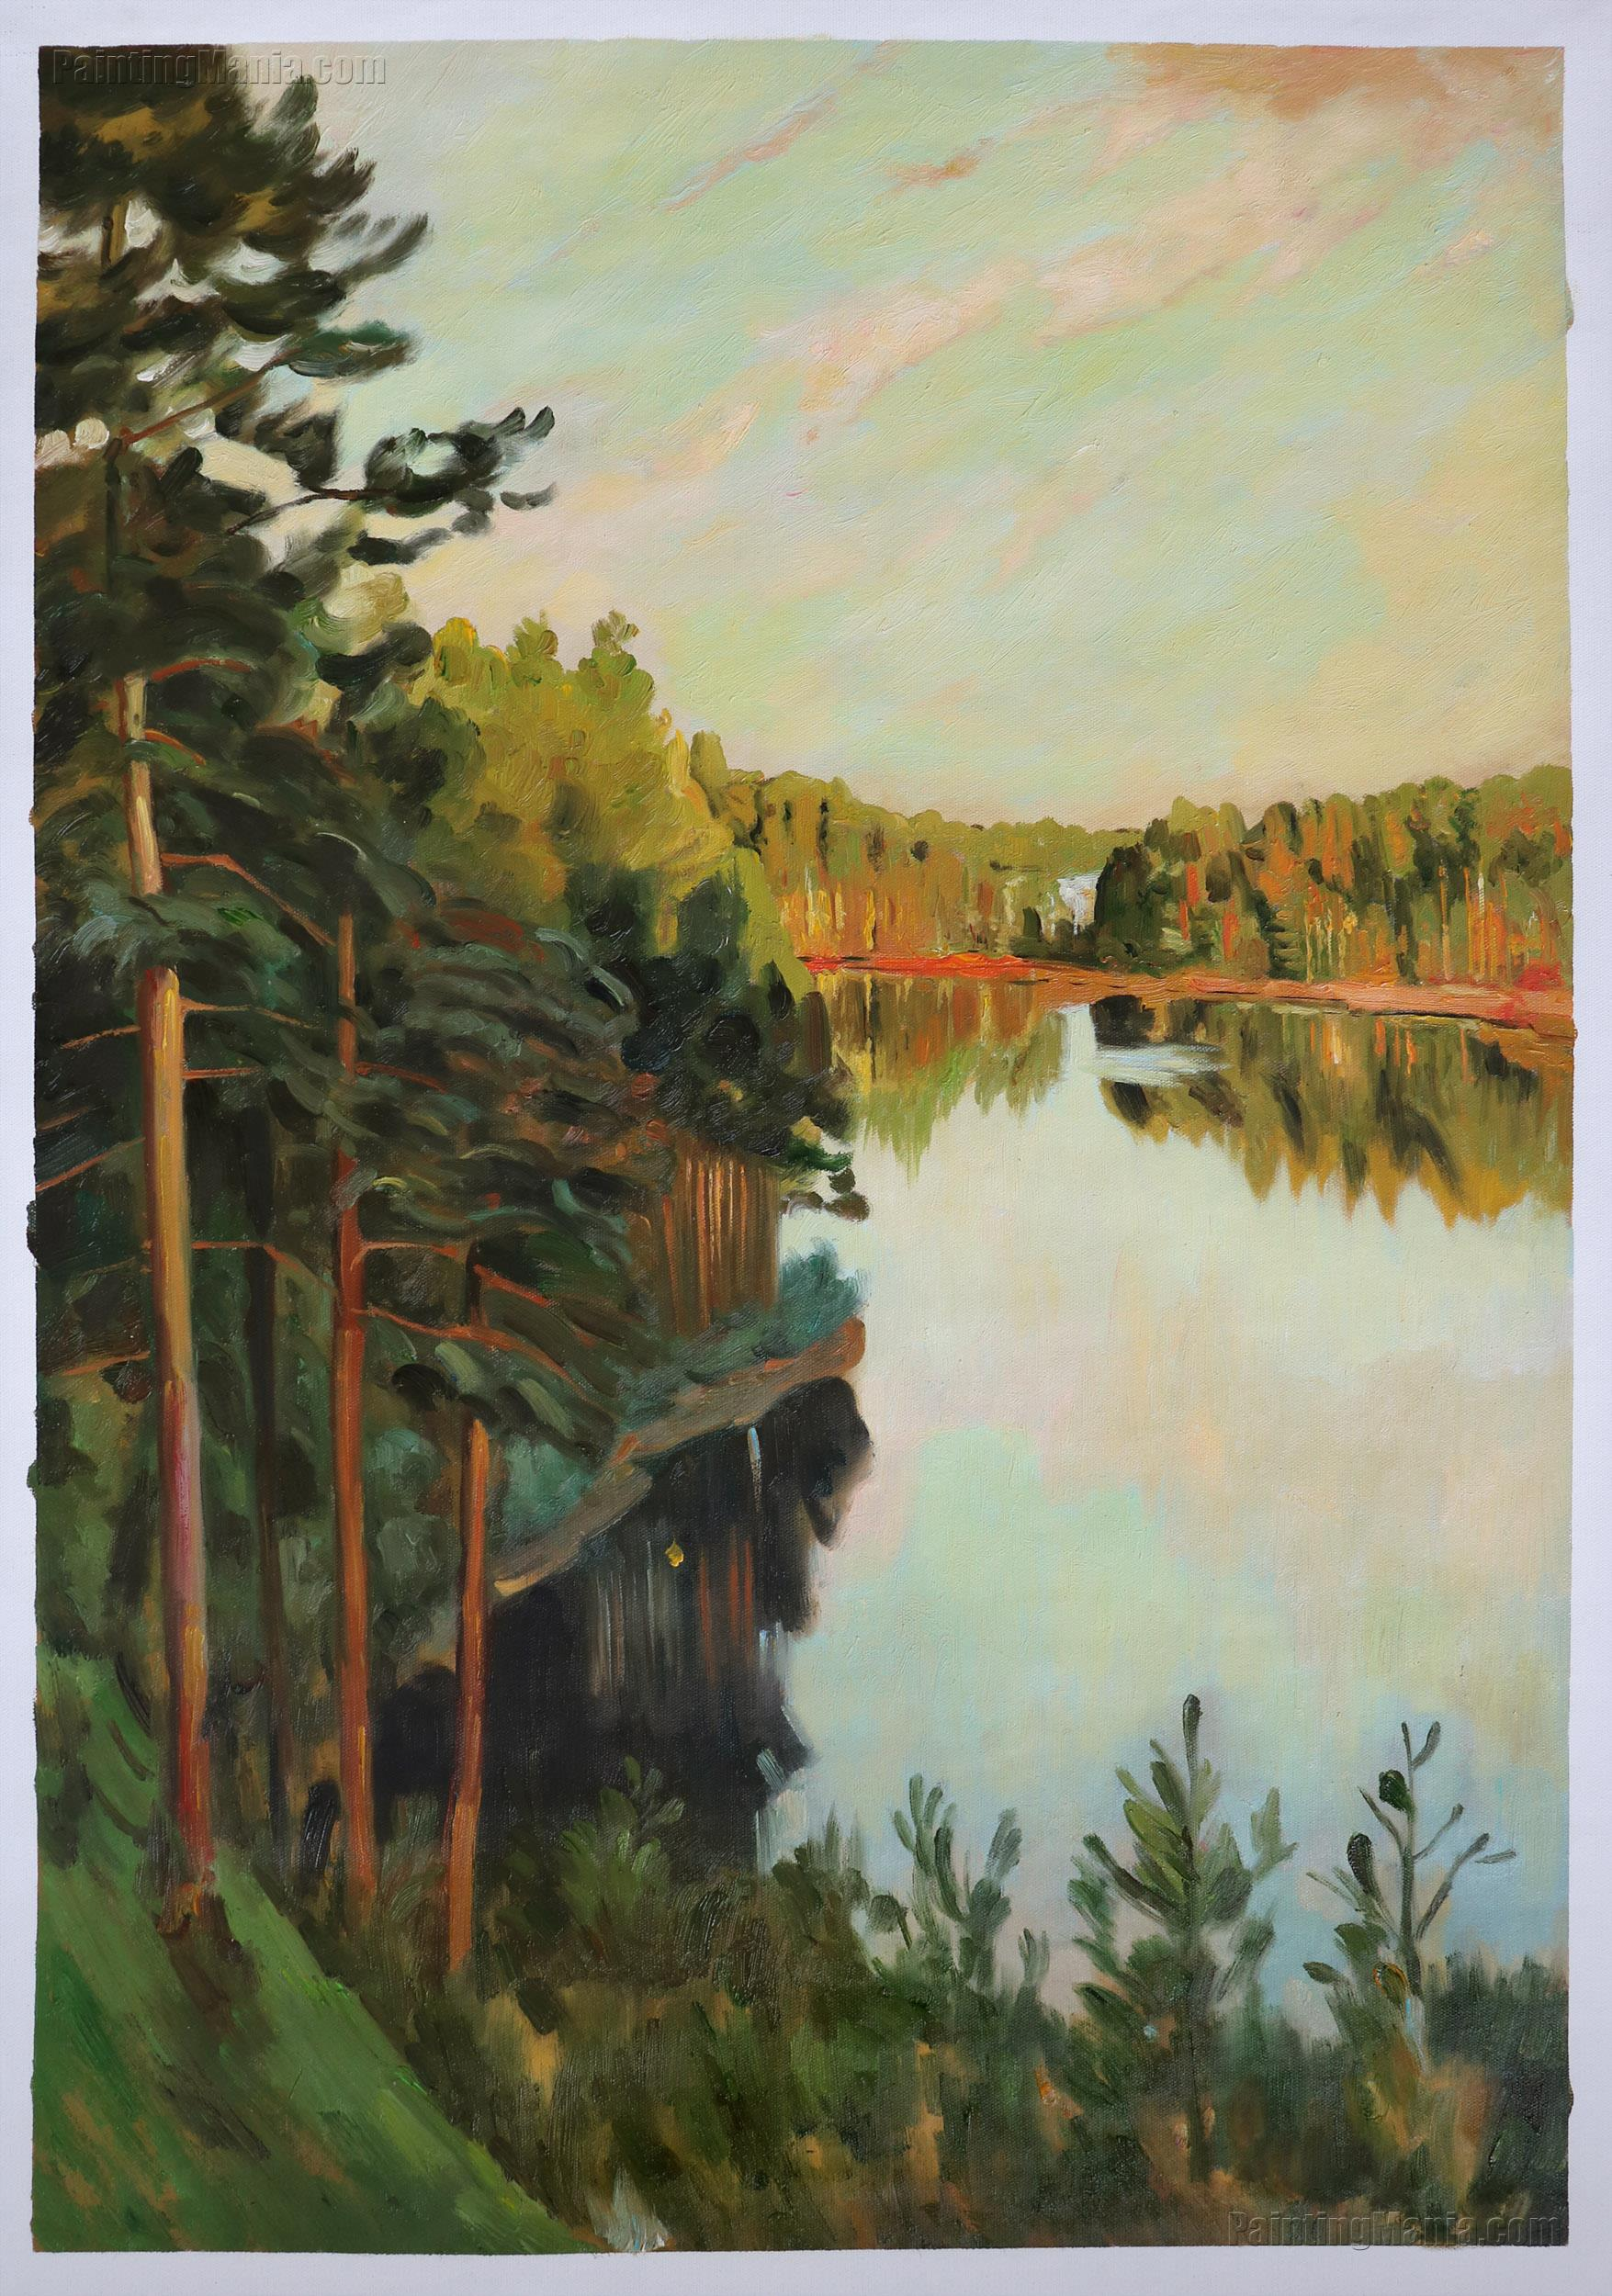 Lake in the Forest 2